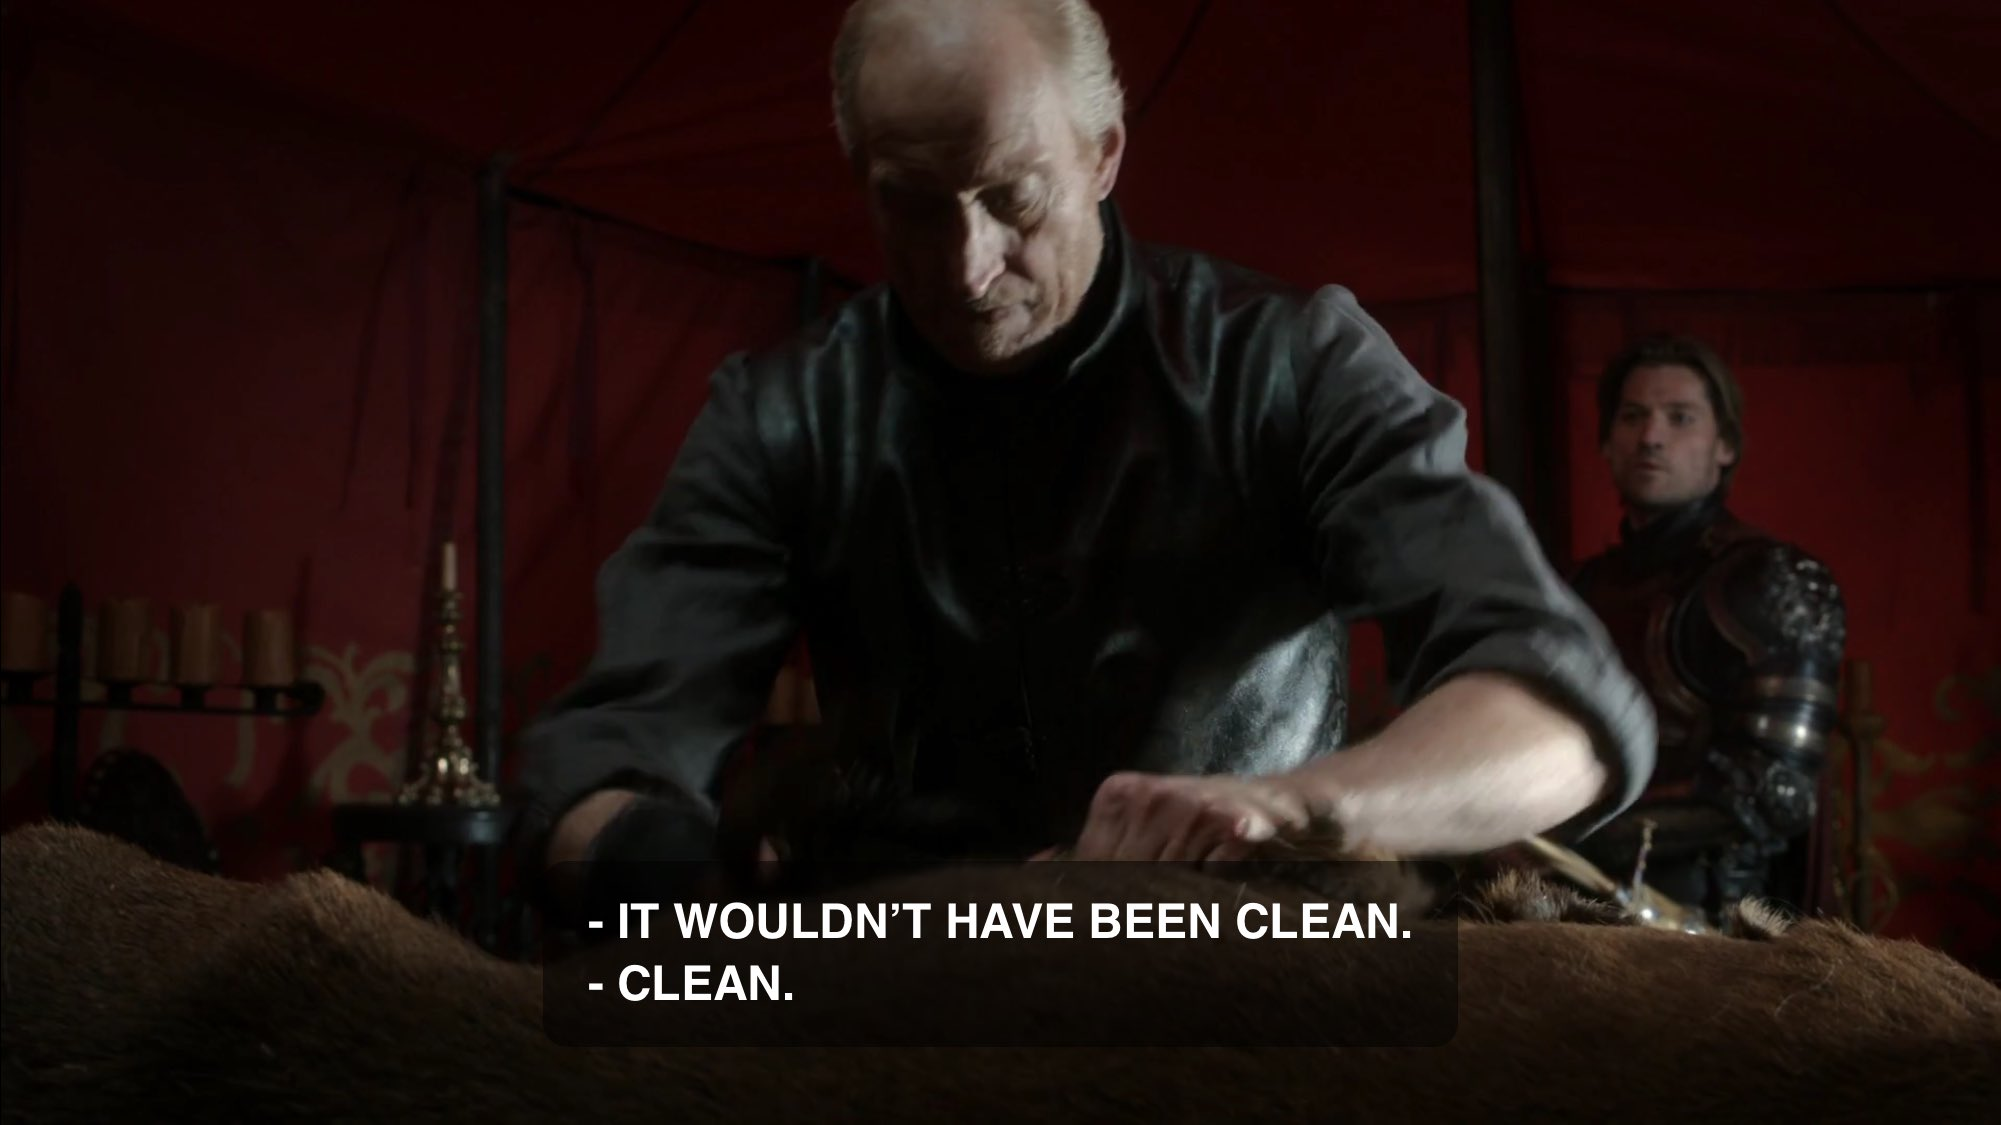 All Tywin cares about is why Jaime didn't killed Ned when he had a chance. He scoffs at Jaime's answer. https://t.co/vh5MGM0gBz